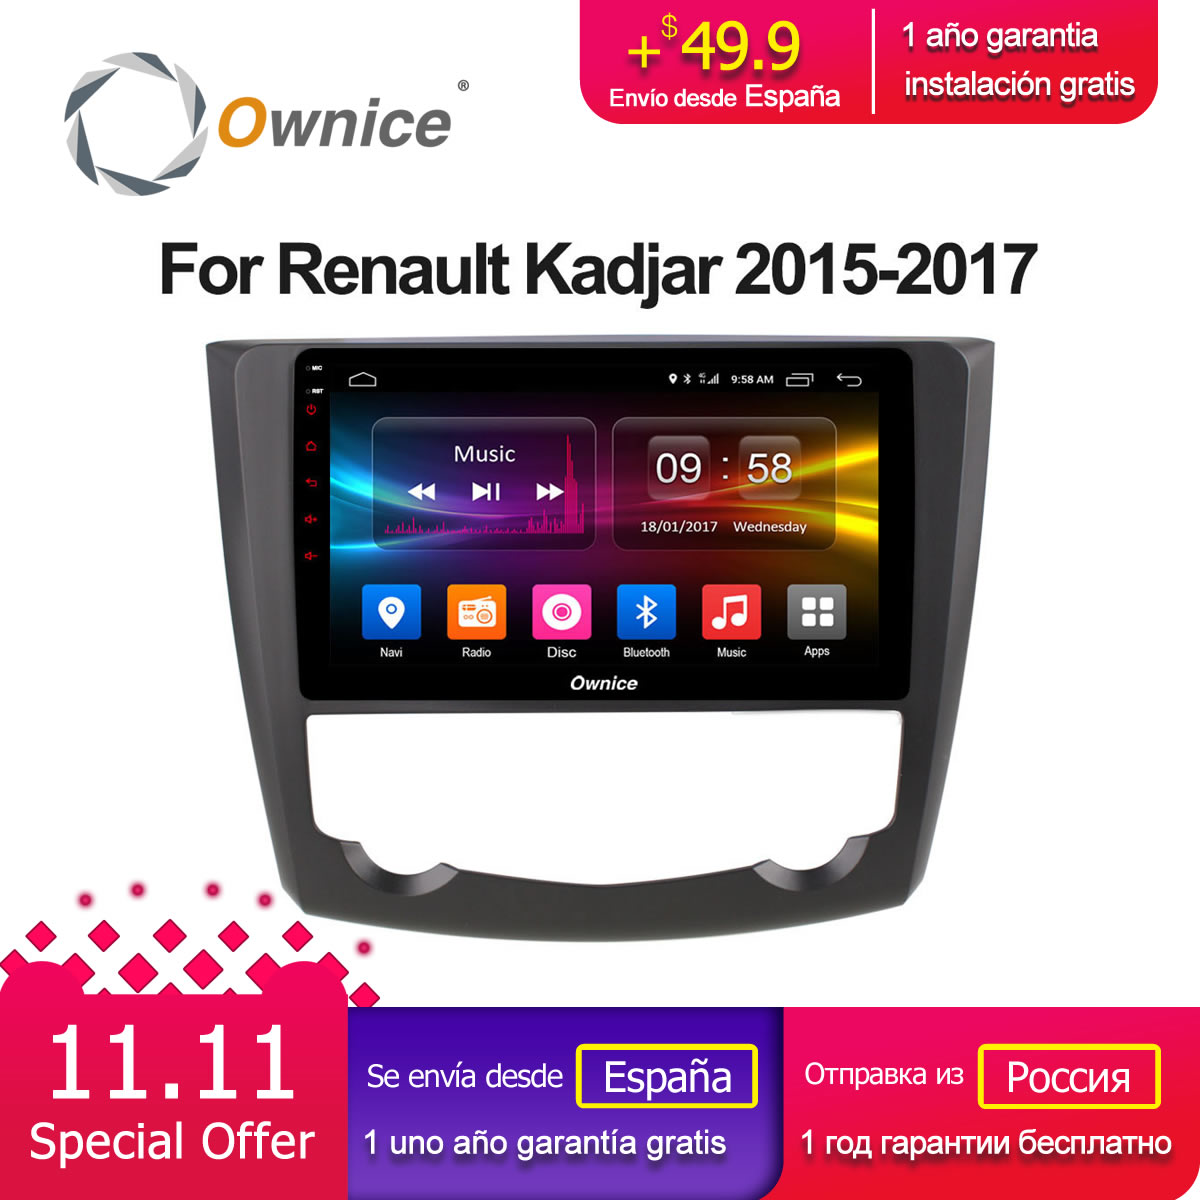 Ownice C500+ G10 10.1 ips Octa 8 Core Android 8.1 Car GPS PC for VW Tiguan L 2017 Radio Multimedia Players 2G RAM 4G LTE DAB+ ownice c500 octa core 10 1 android gps car radio multimedia player 2g 32g for skoda octavia 2014 2015 2016 2017 dvd 4g lte pc